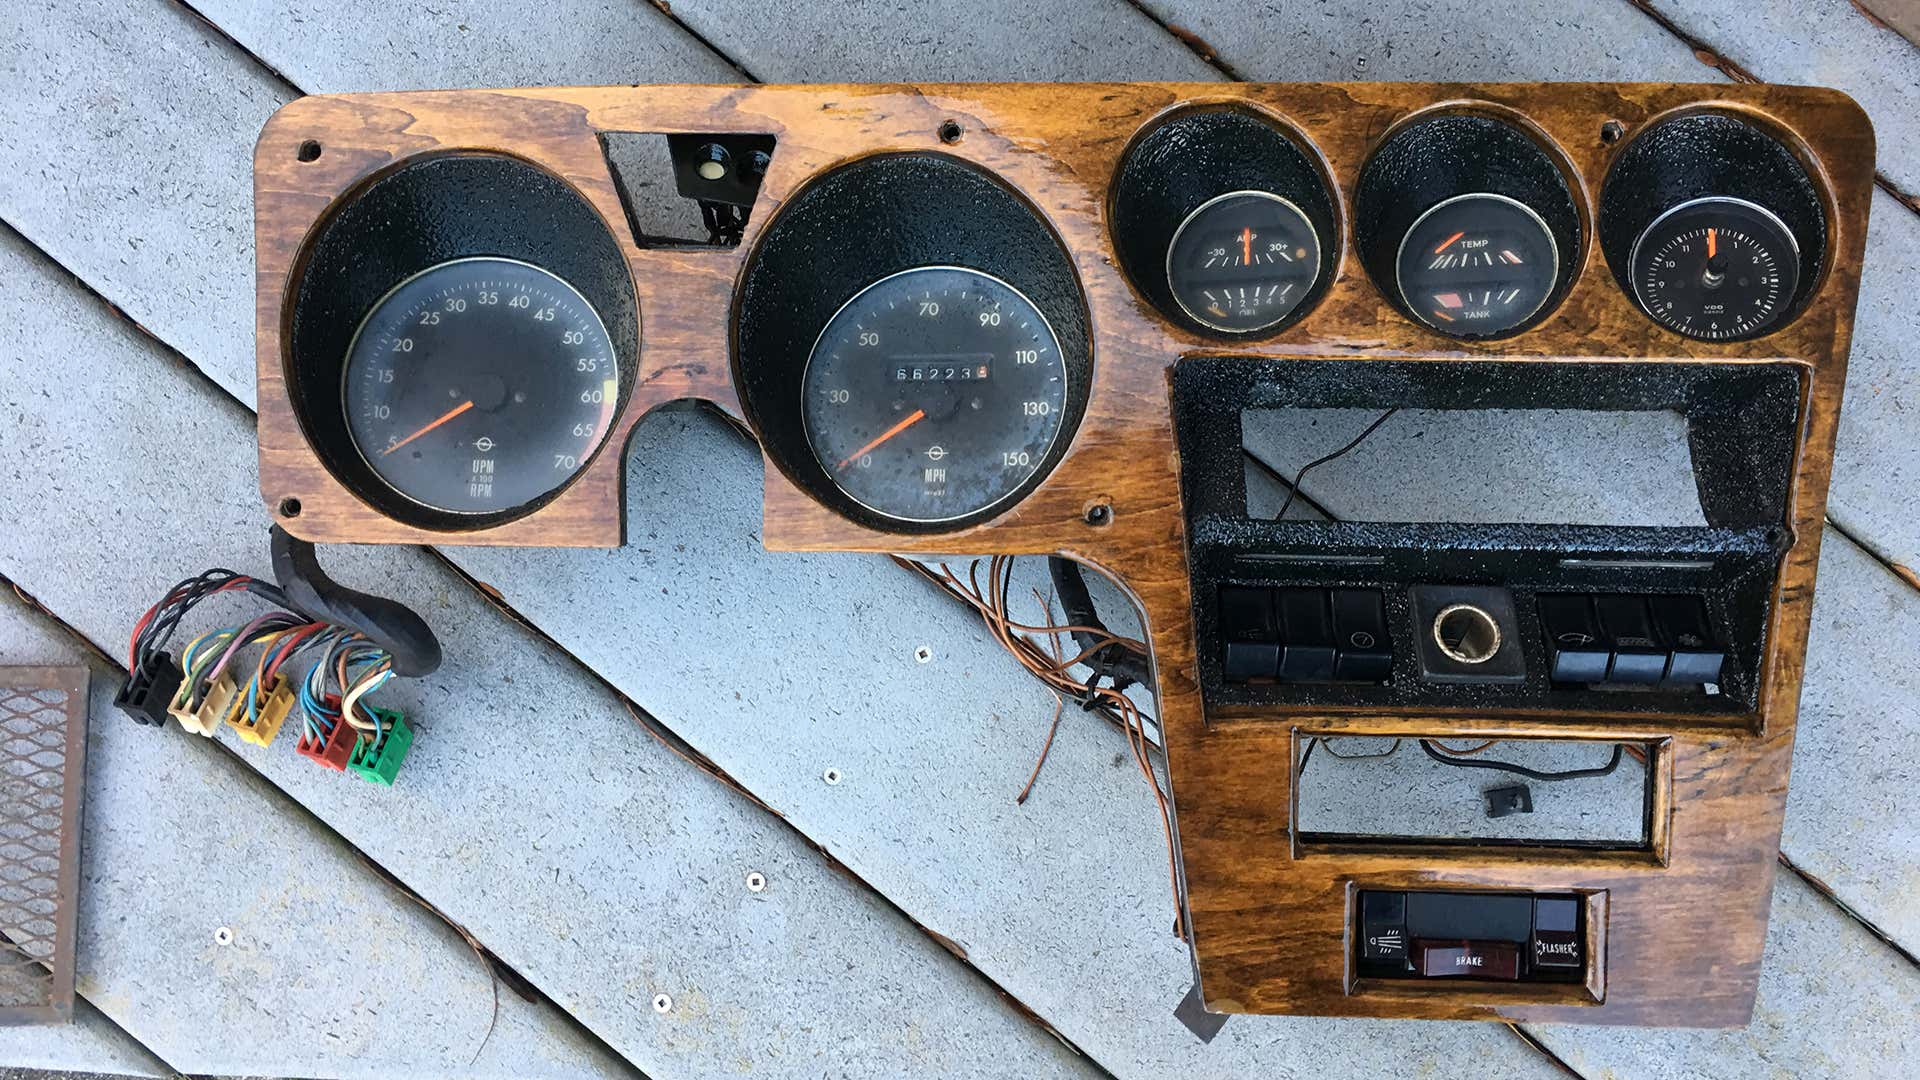 A modified 1970 Opel GT dashboard.